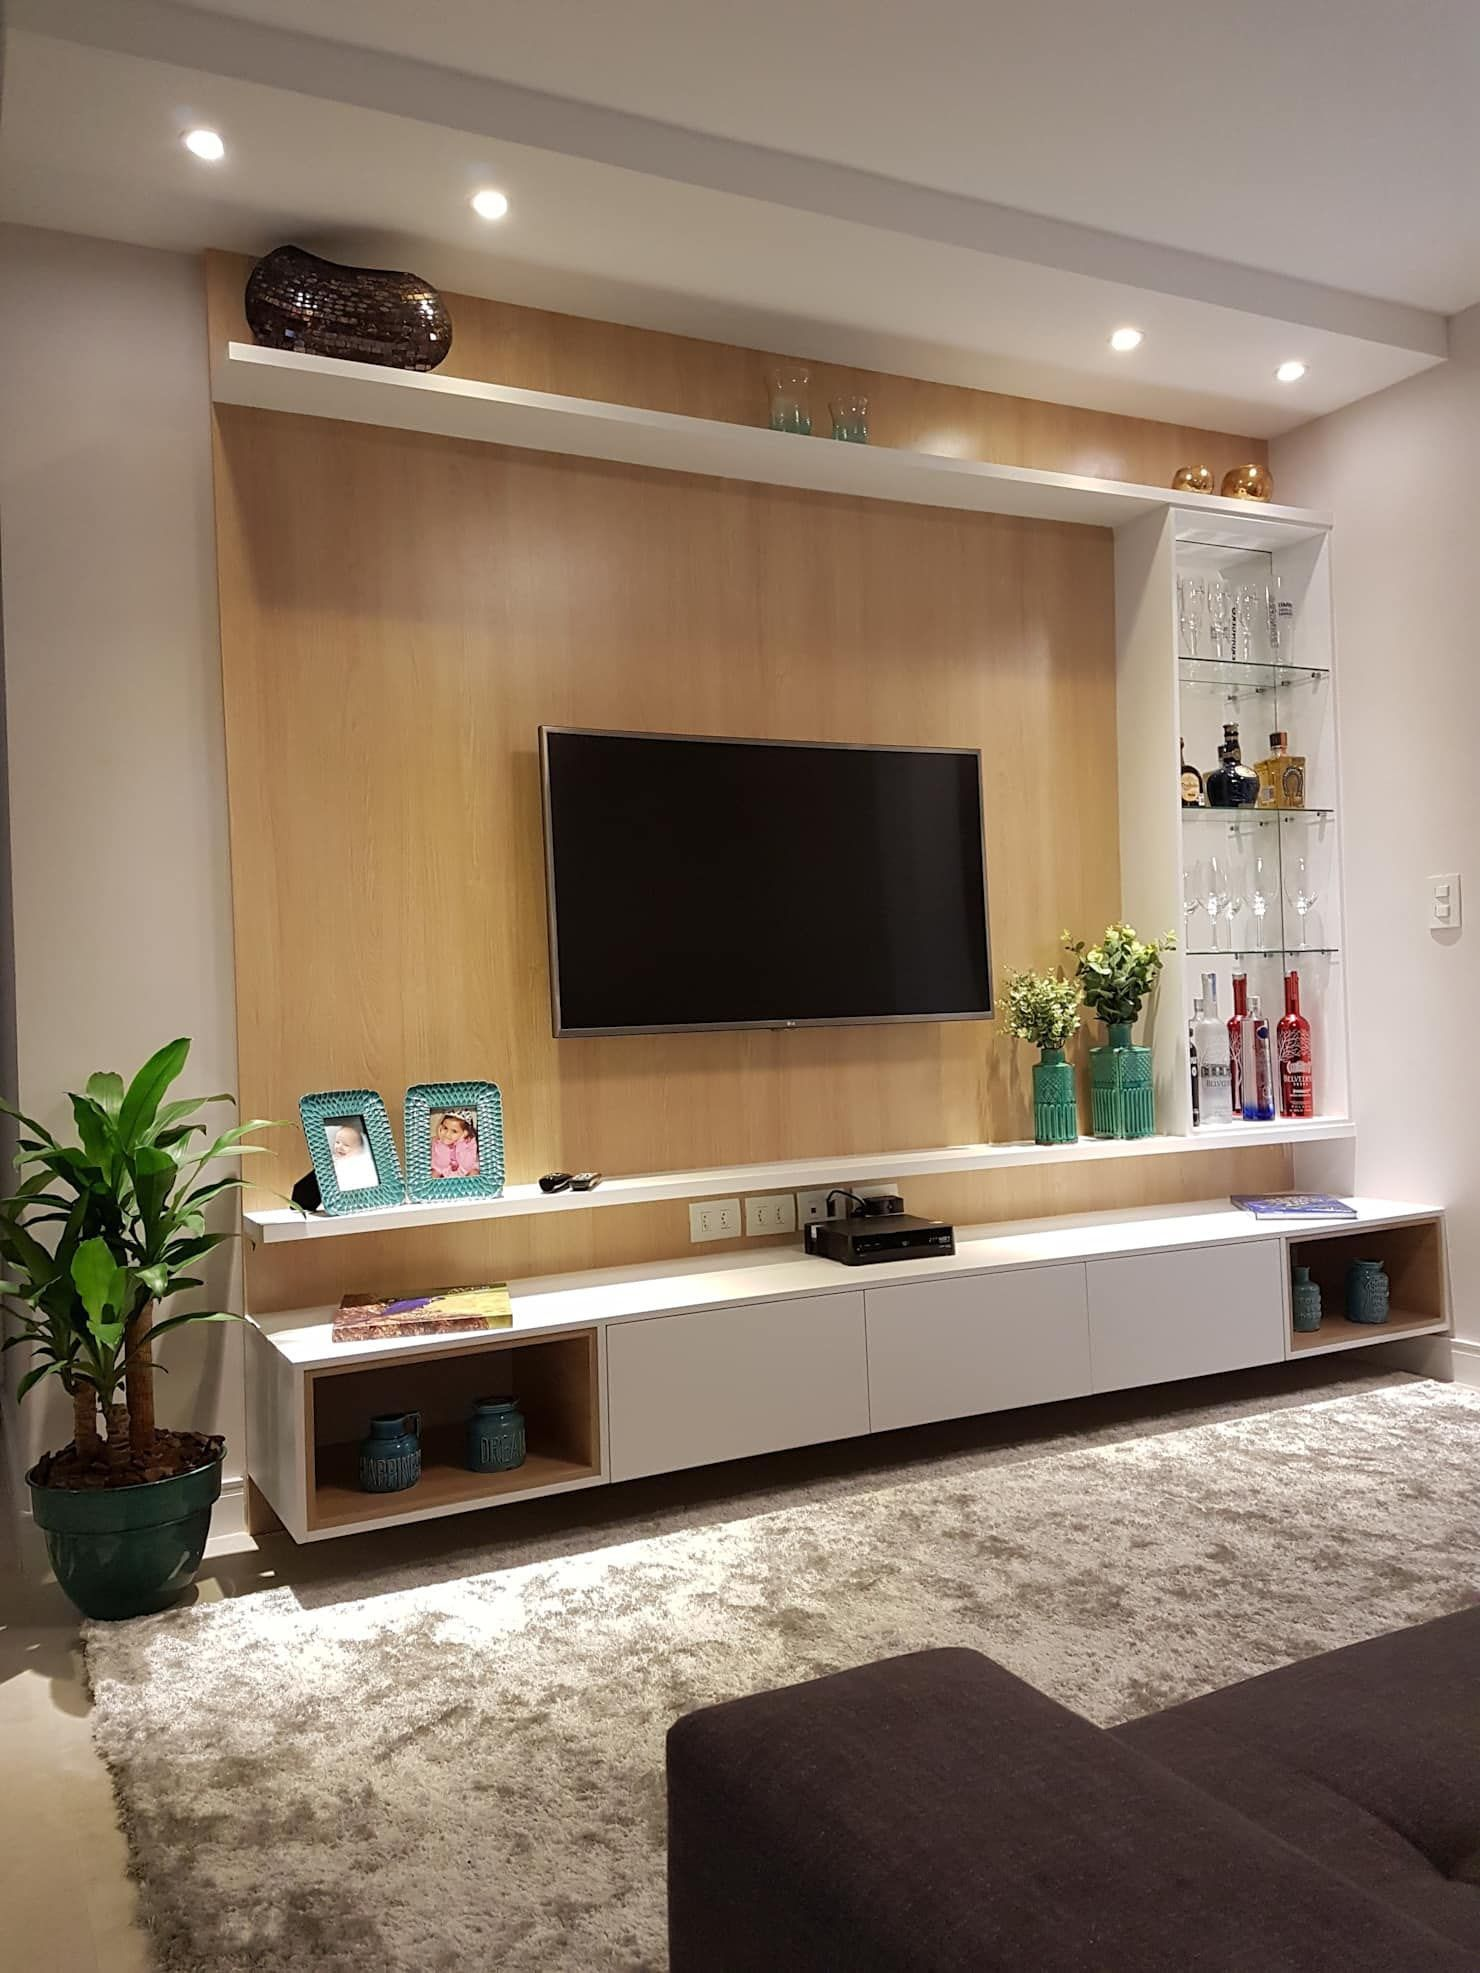 Decorator Tricks For Small Living Rooms And More Homes Tre Tv Room Design Wall Tv Unit Design Living Room Tv Wall